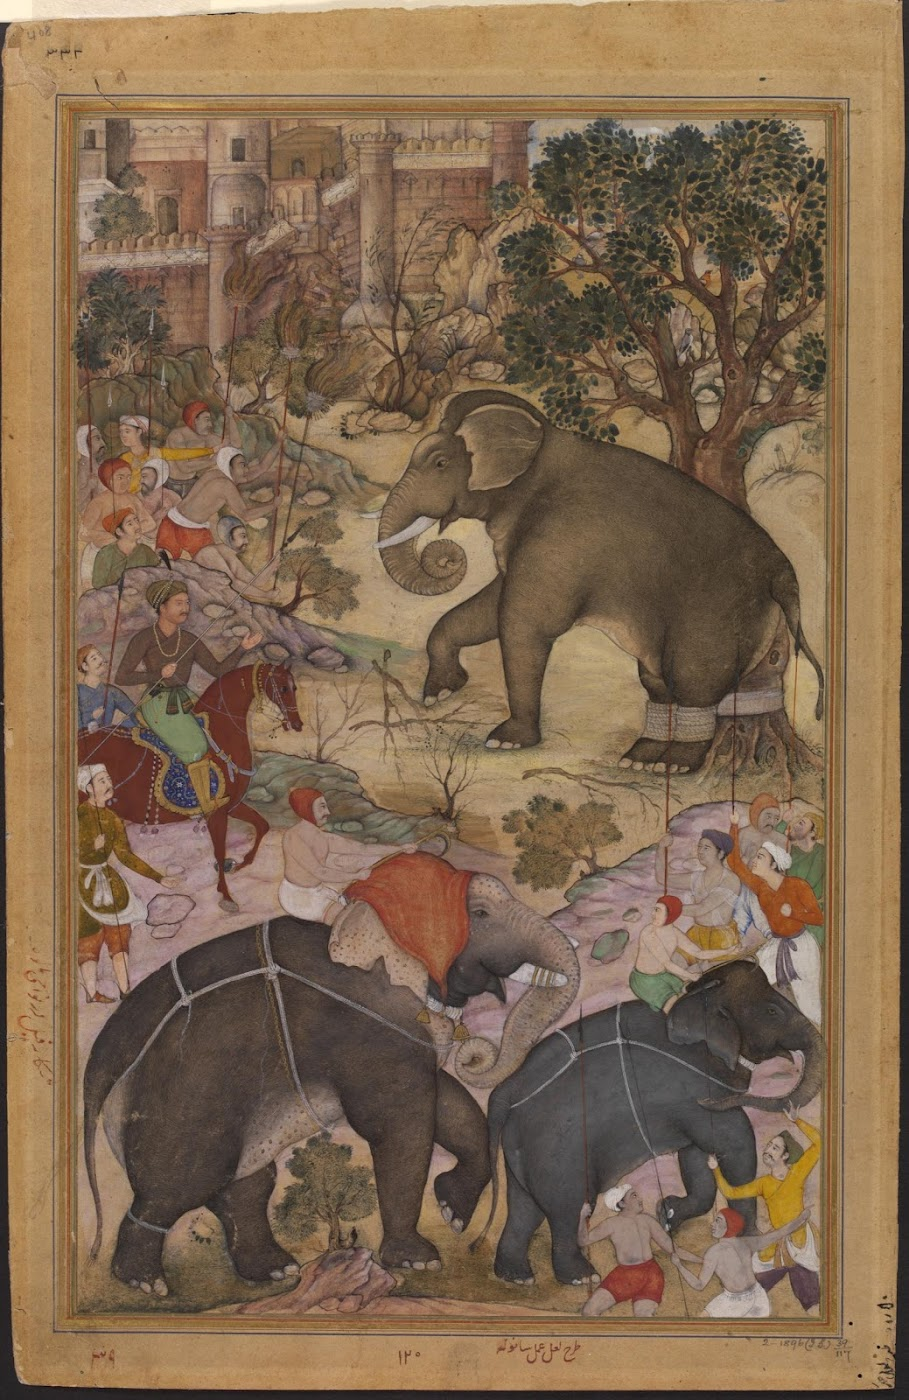 Mughal emperor Akbar on horseback, inspecting a wild elephant captured from a herd during a royal hunting expedition near Malwa in north central India - Mughal Painting, Circa 1586-1589